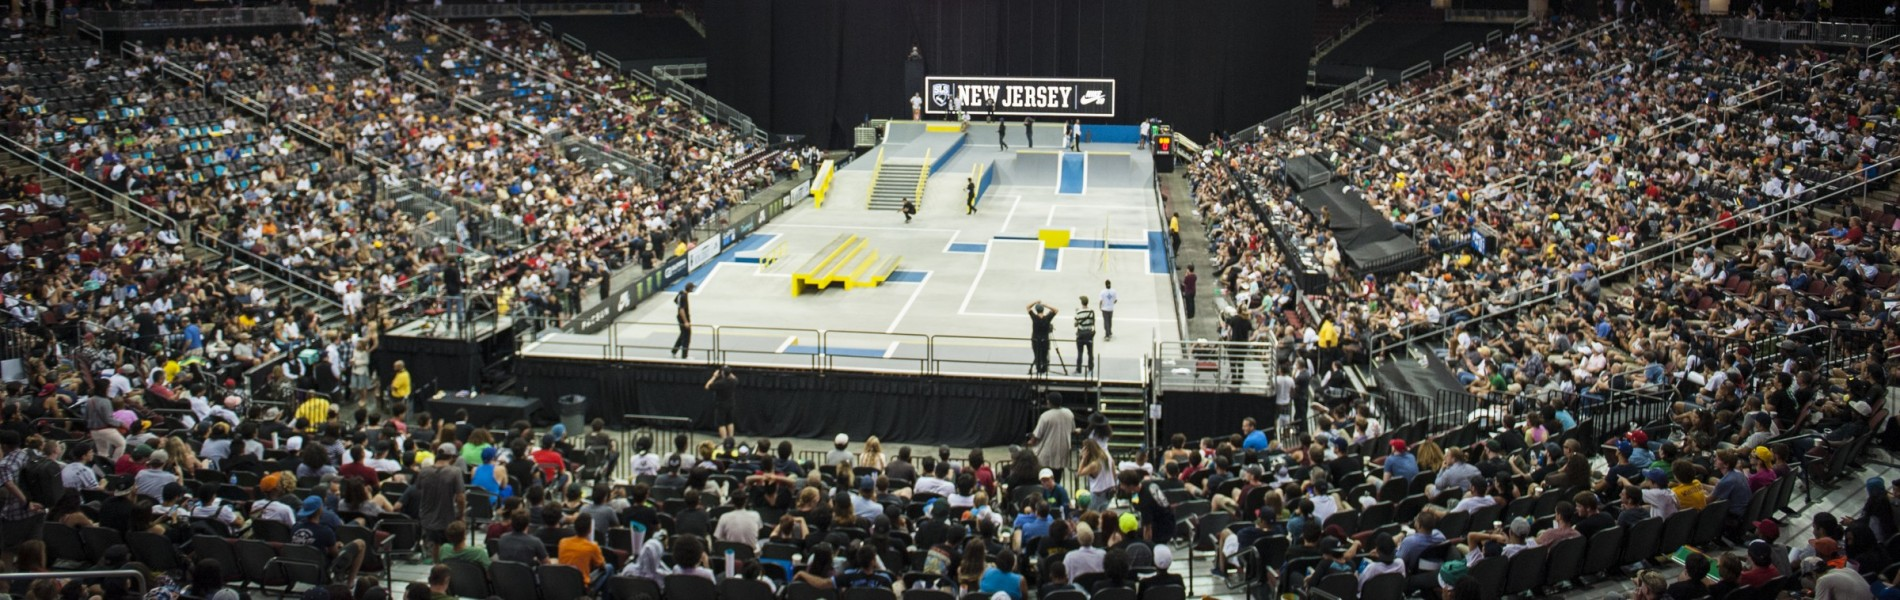 The Skate Course from the 2016 Street League Series in Newark, New Jersey